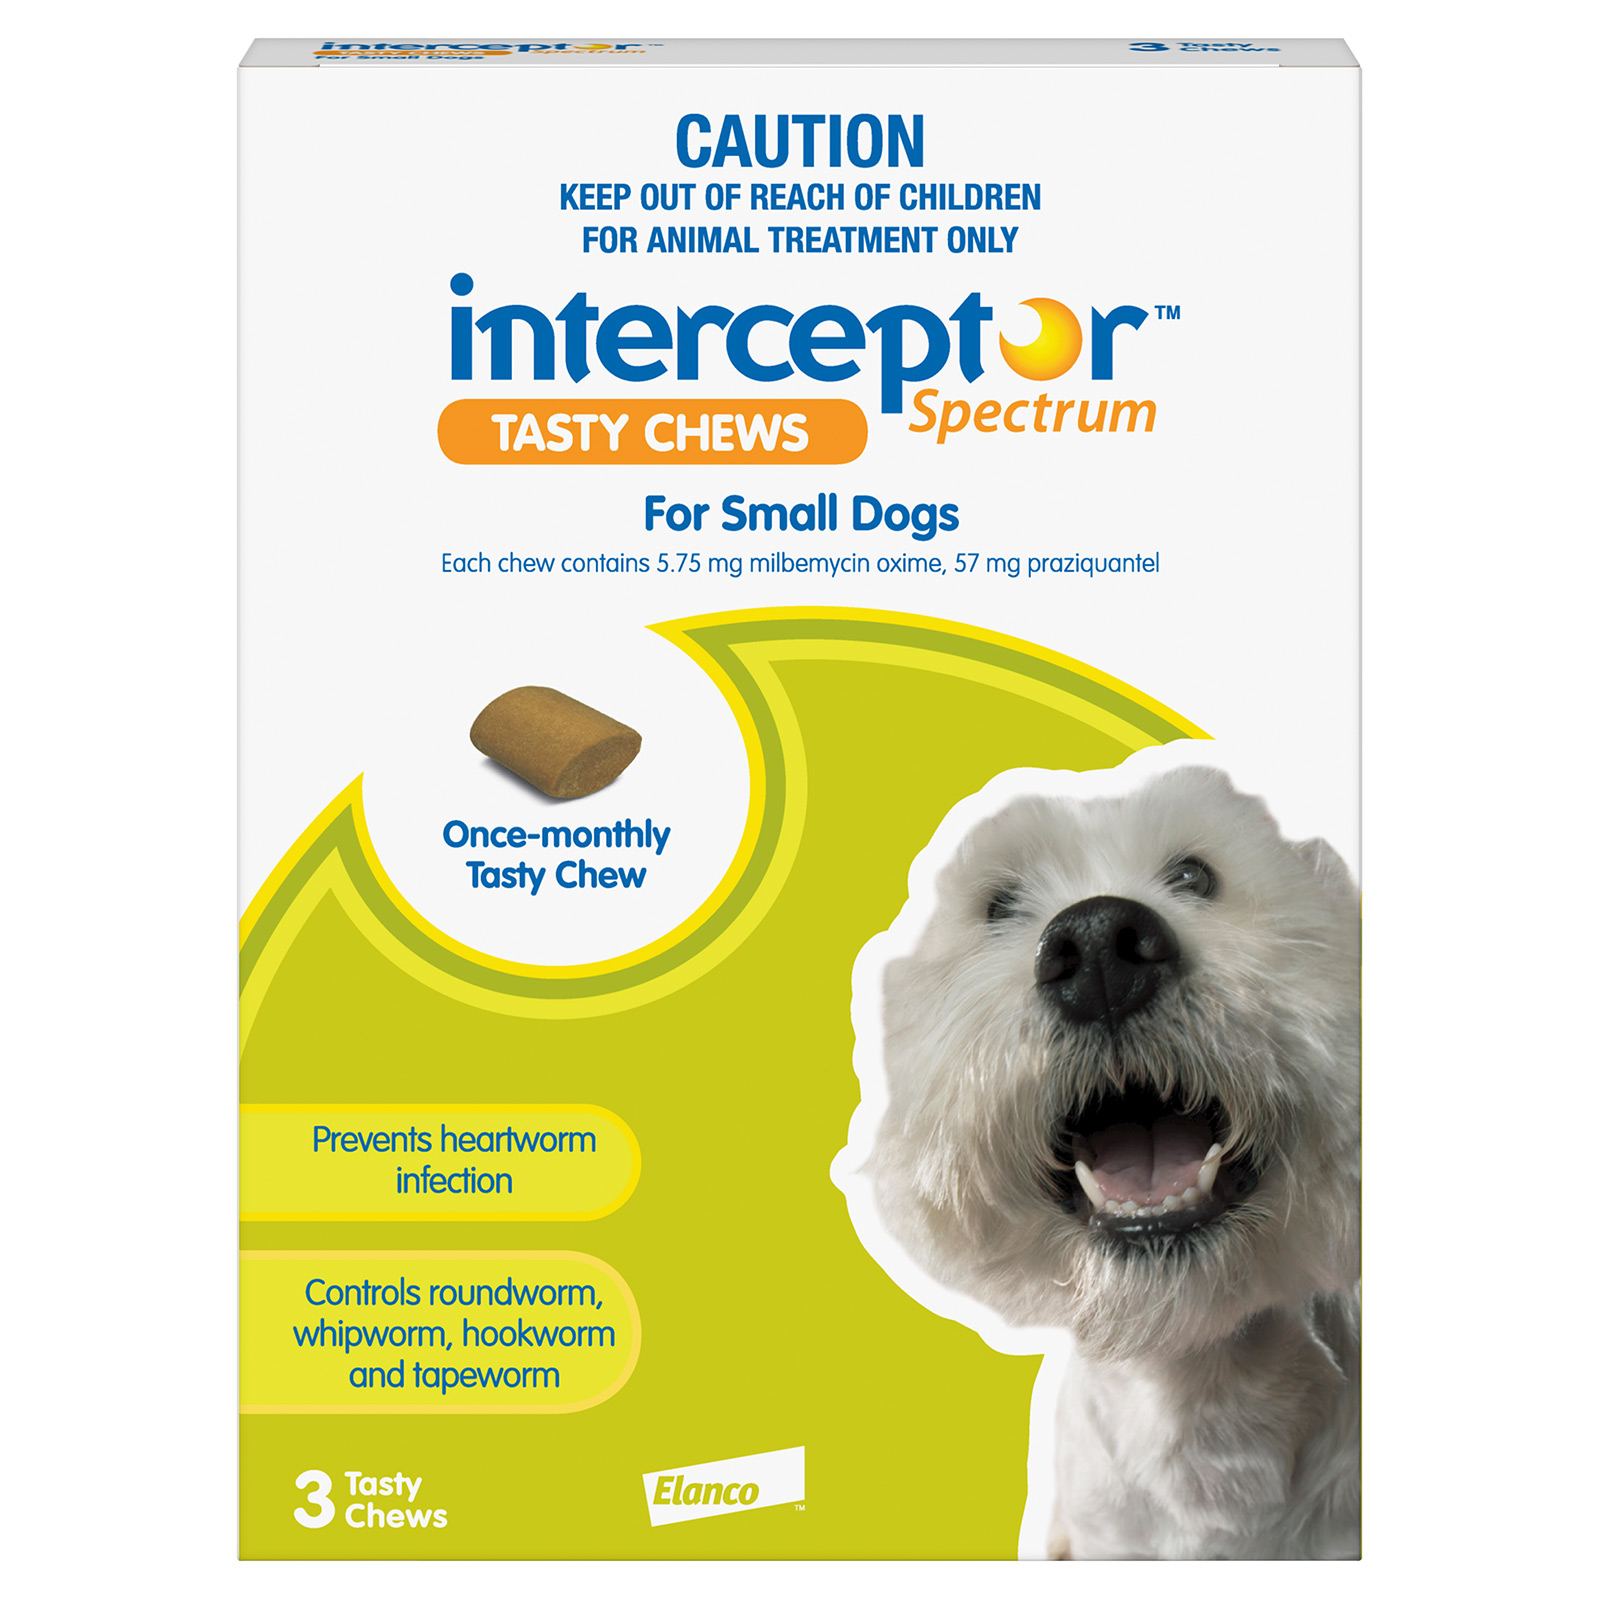 Interceptor Spectrum Tasty Chews For Small Dogs 4 To 11Kg (Green)